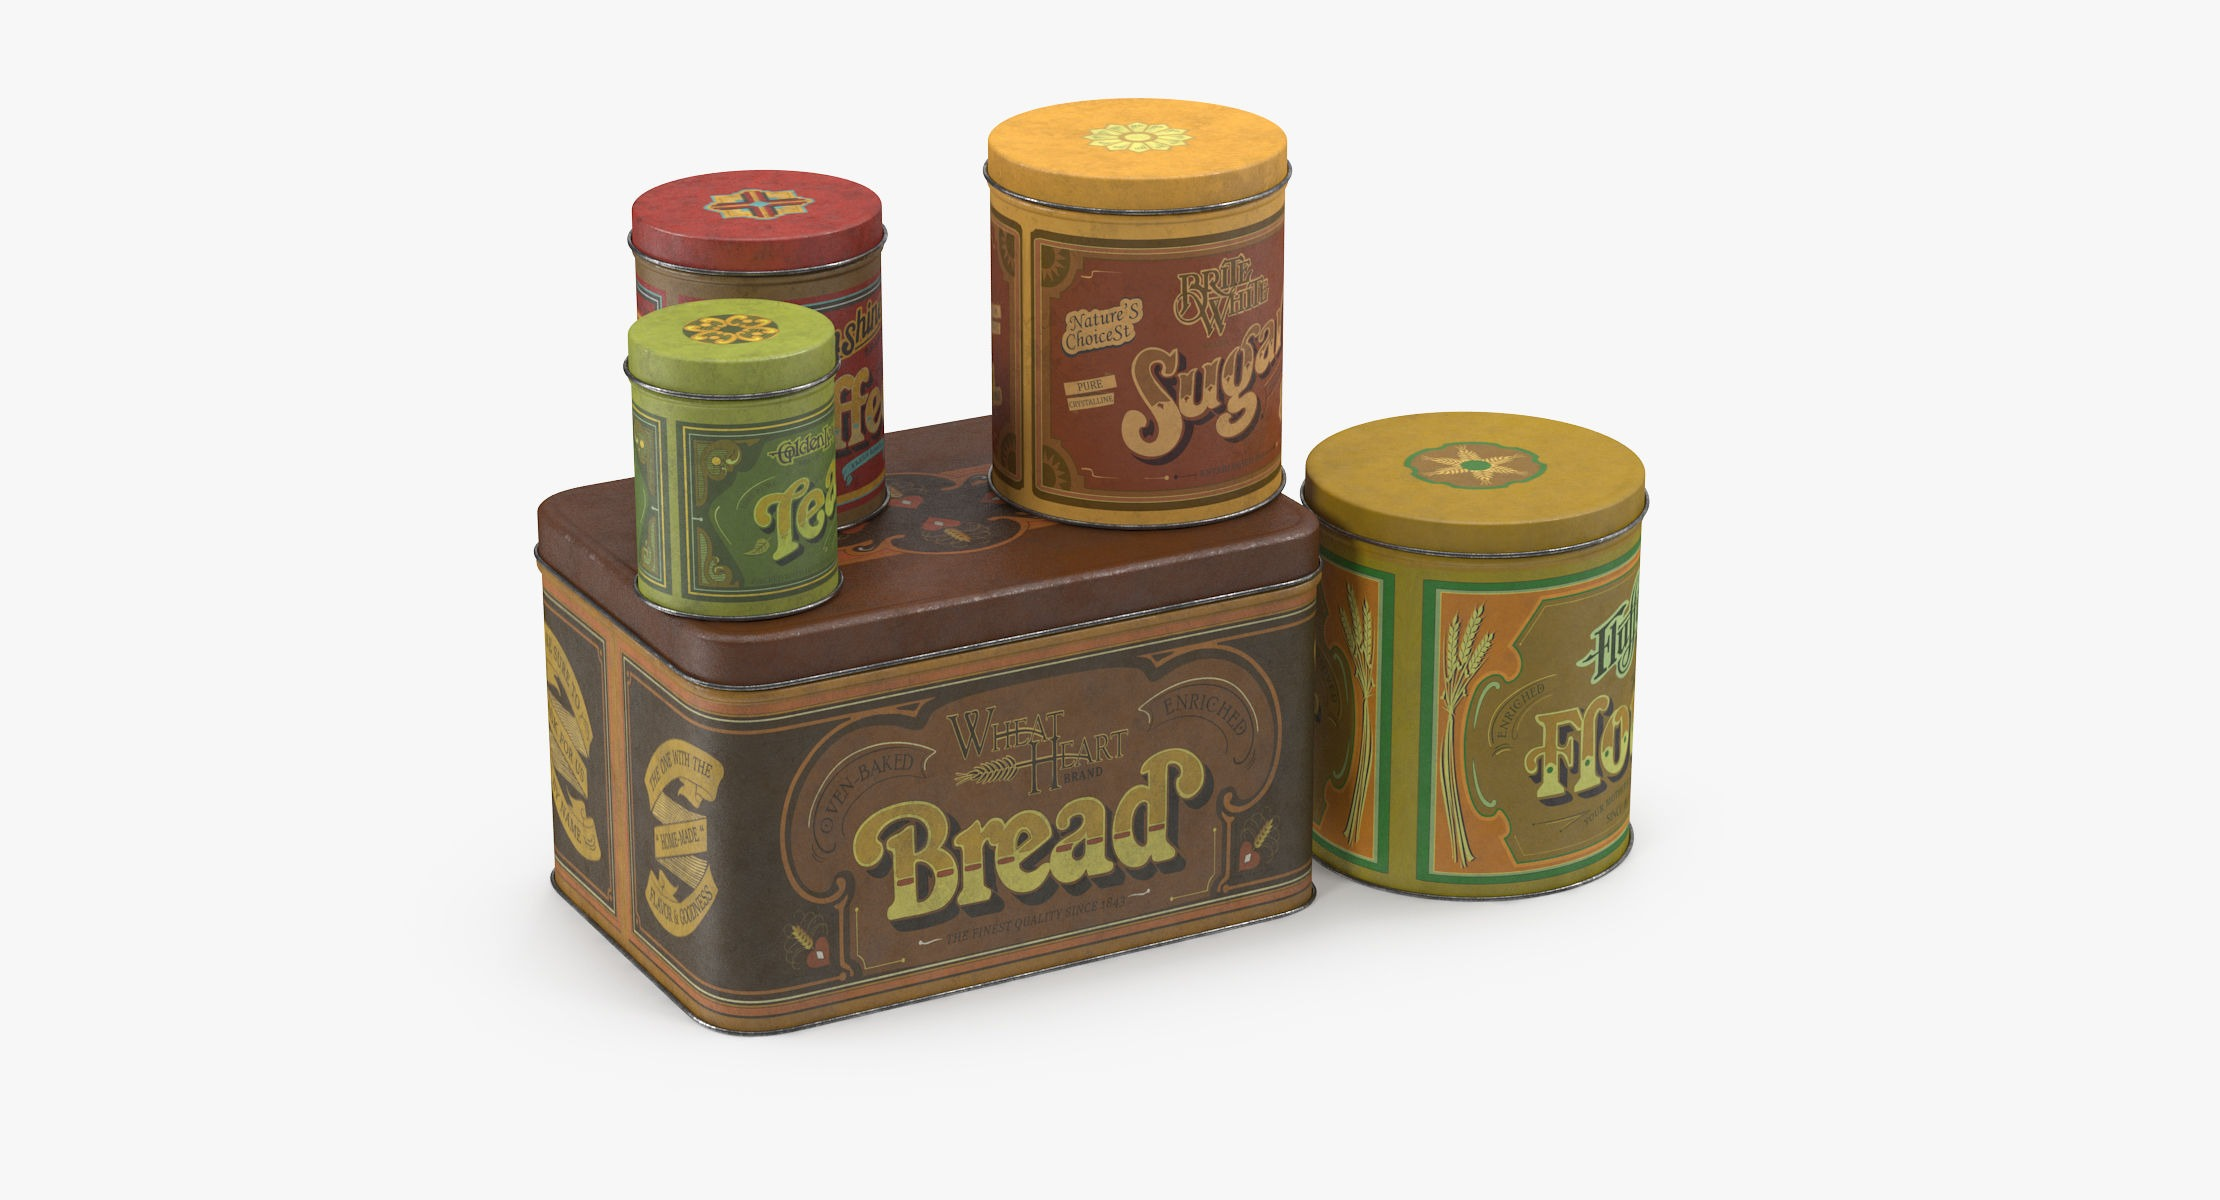 Vintage Metal Kitchen Tins - reel 1